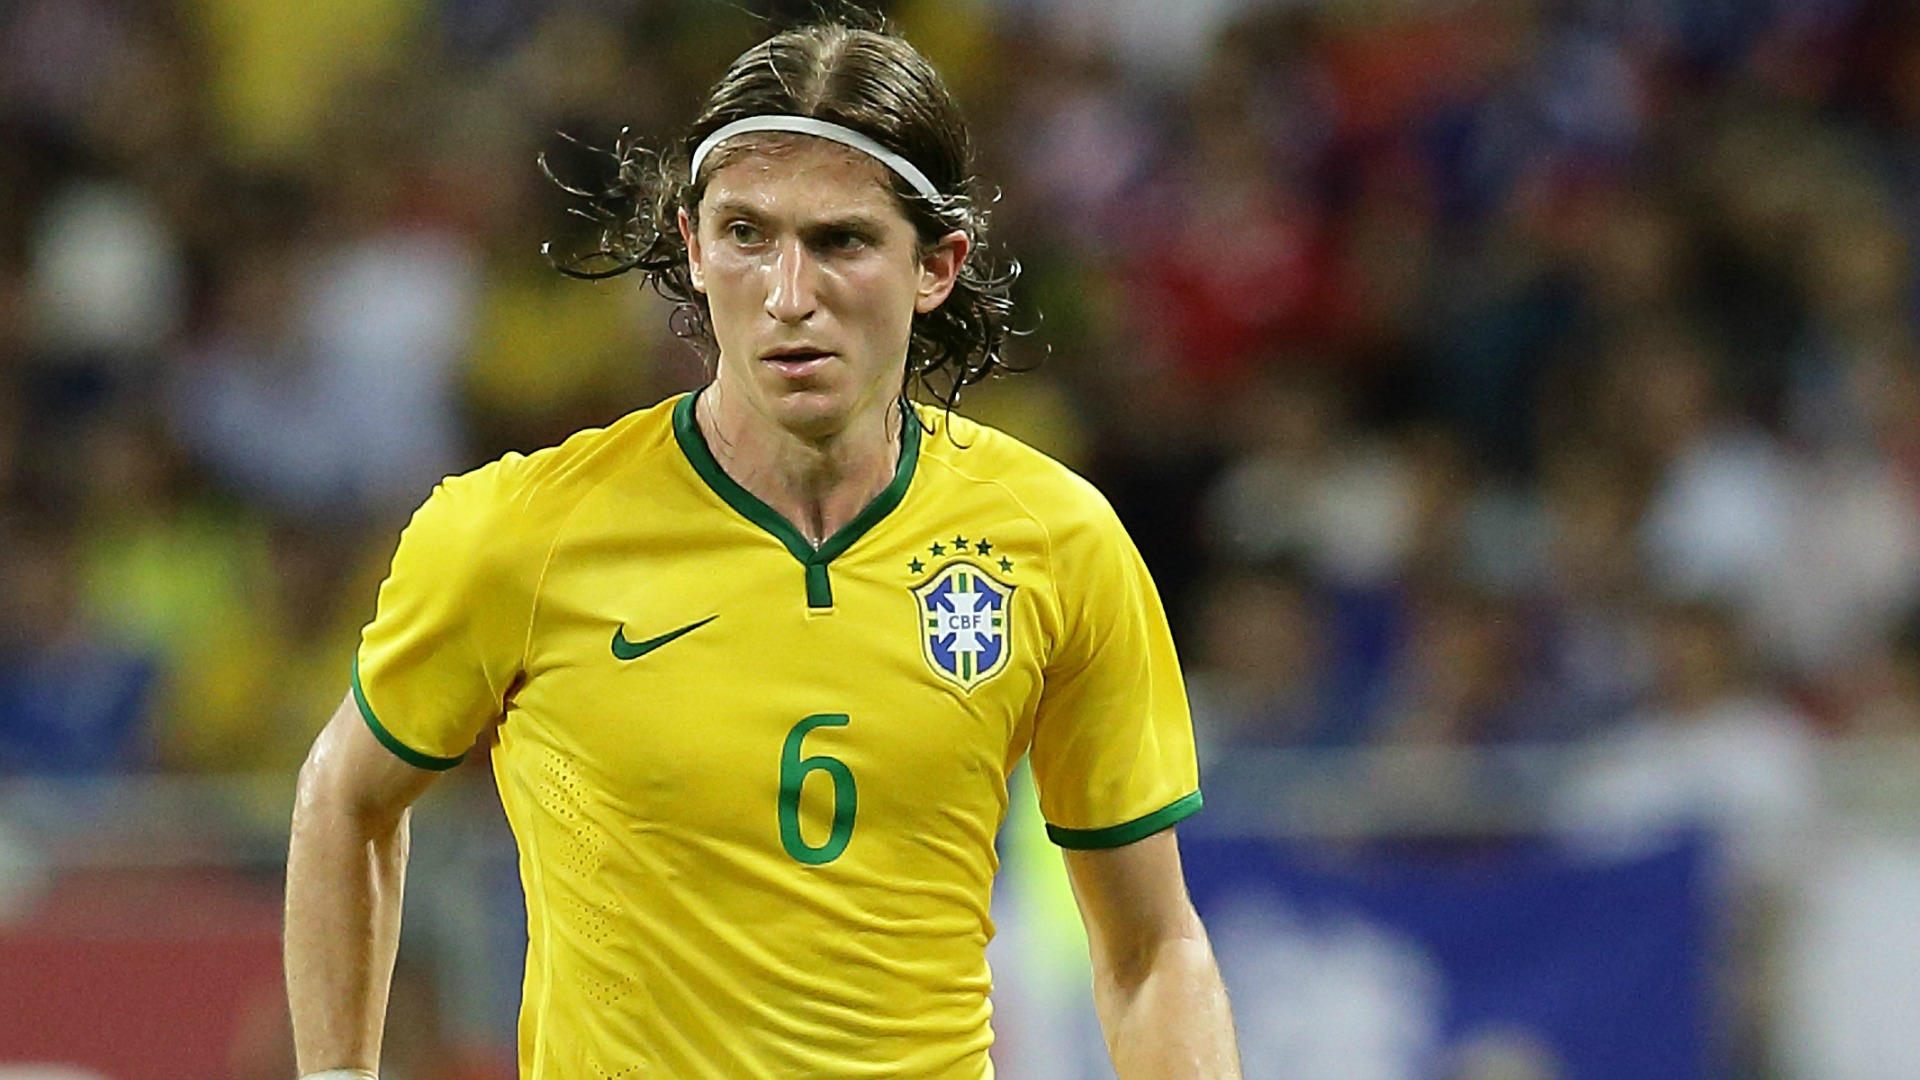 The unsung hero: Filipe Luis is key to zil's chances | Goal.com on